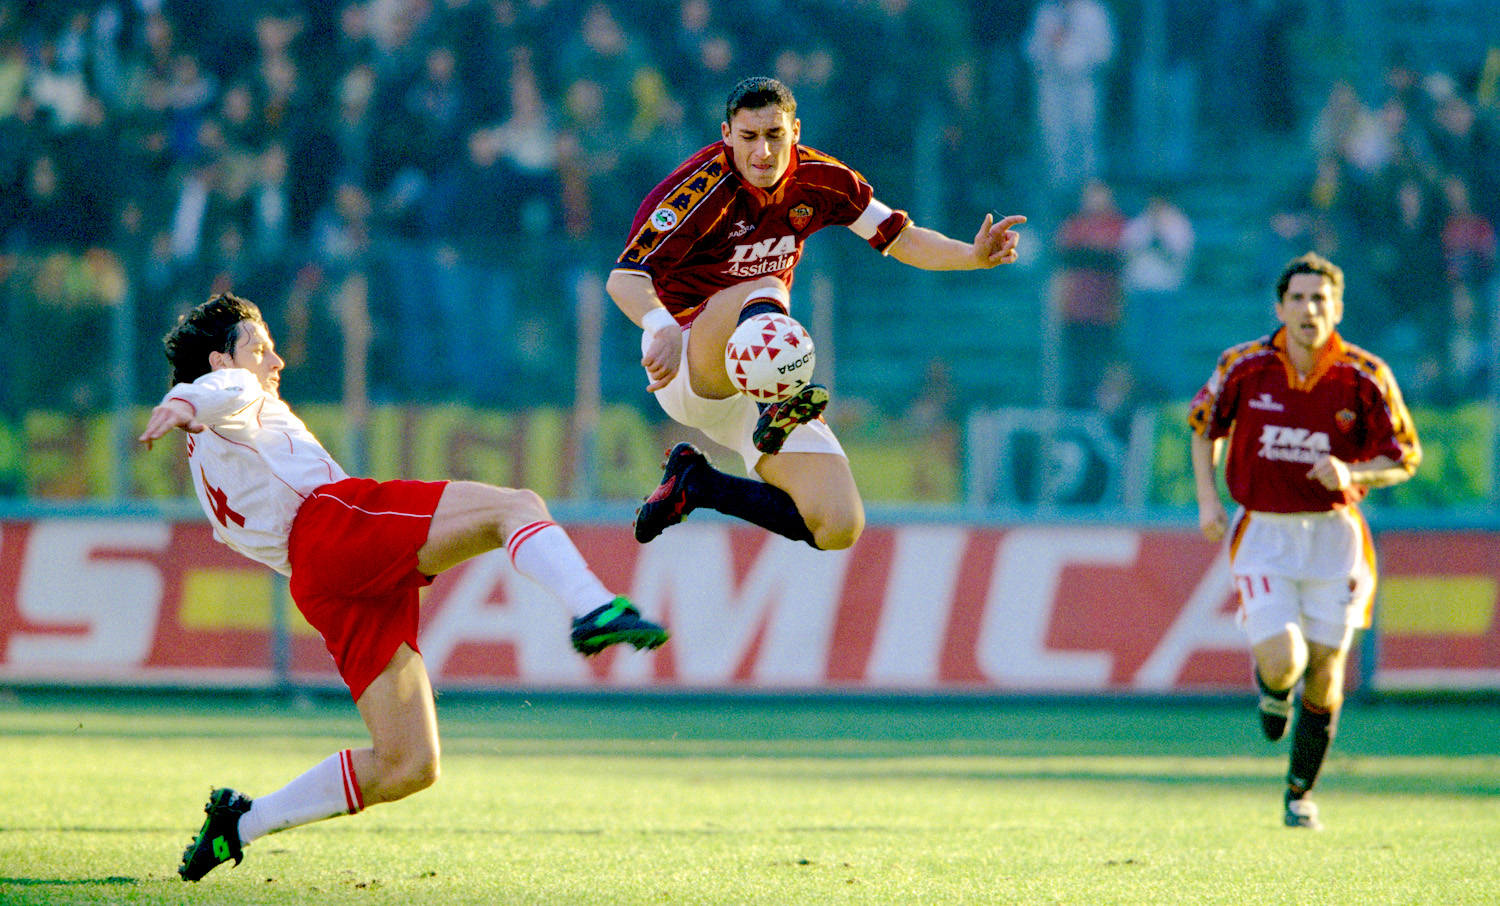 ROME, ITALY - JANUARY 03: Roma player Francesco Totti (c) in action during an Italian Serie A match between AS Roma and Piacenza on January 3, 1999 in Rome, Italy. (Photo by Allsport/Getty Images)